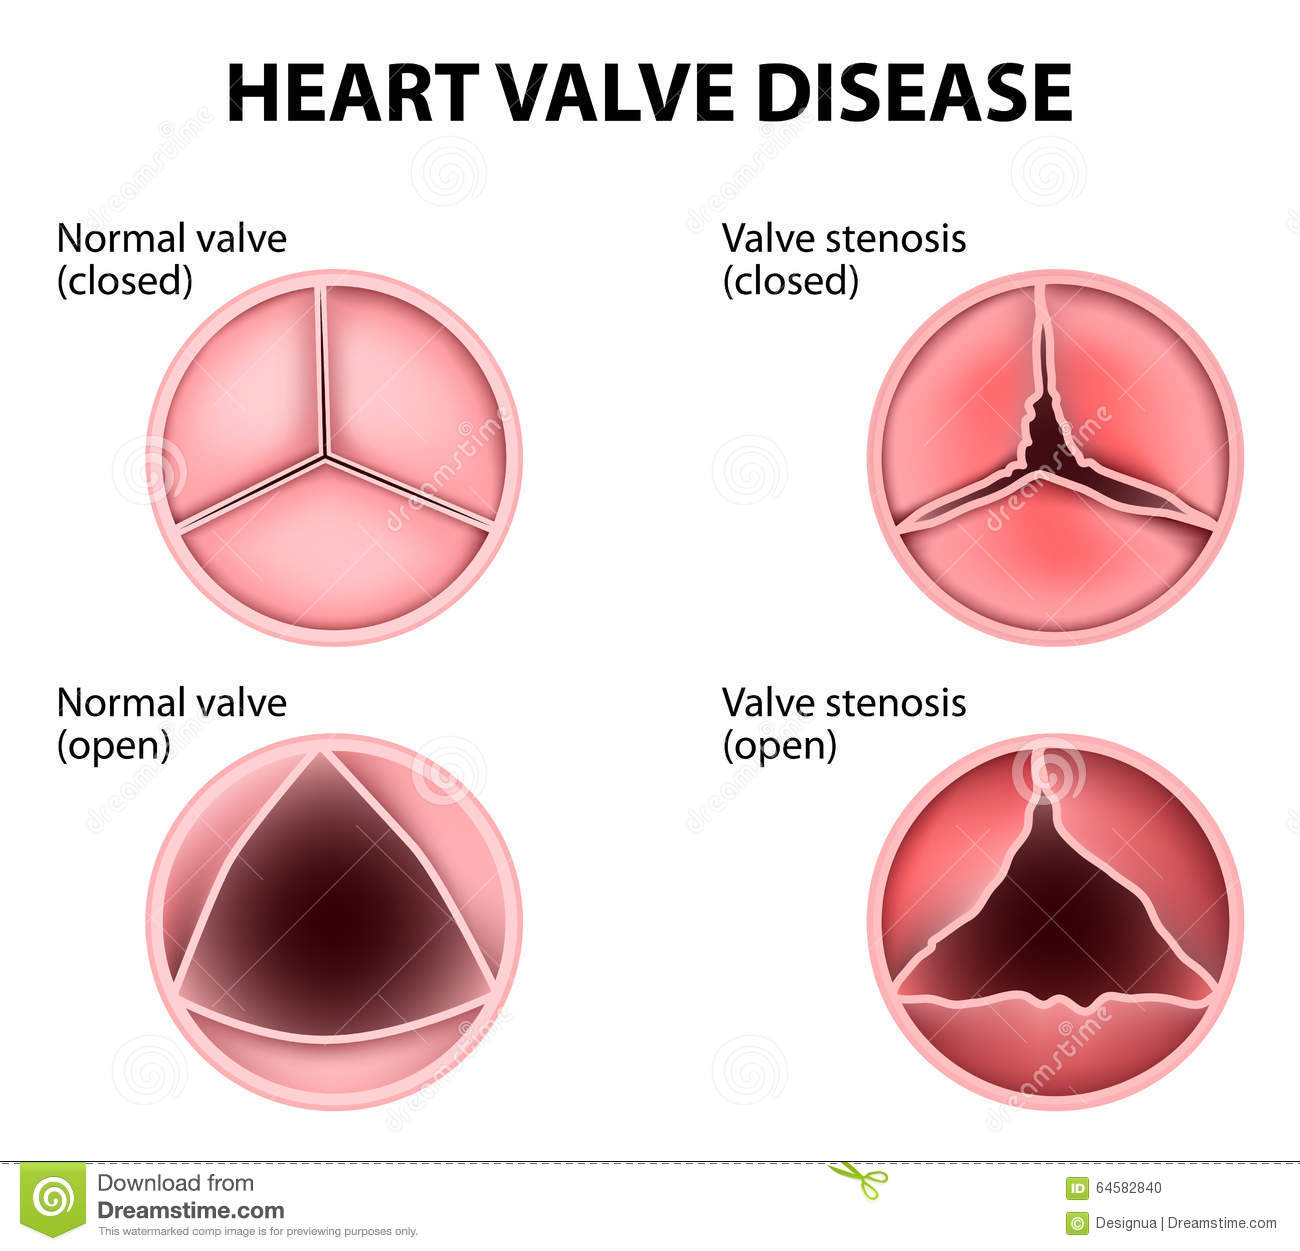 Heart Valve Disease Stock Vector - Image: 64582840